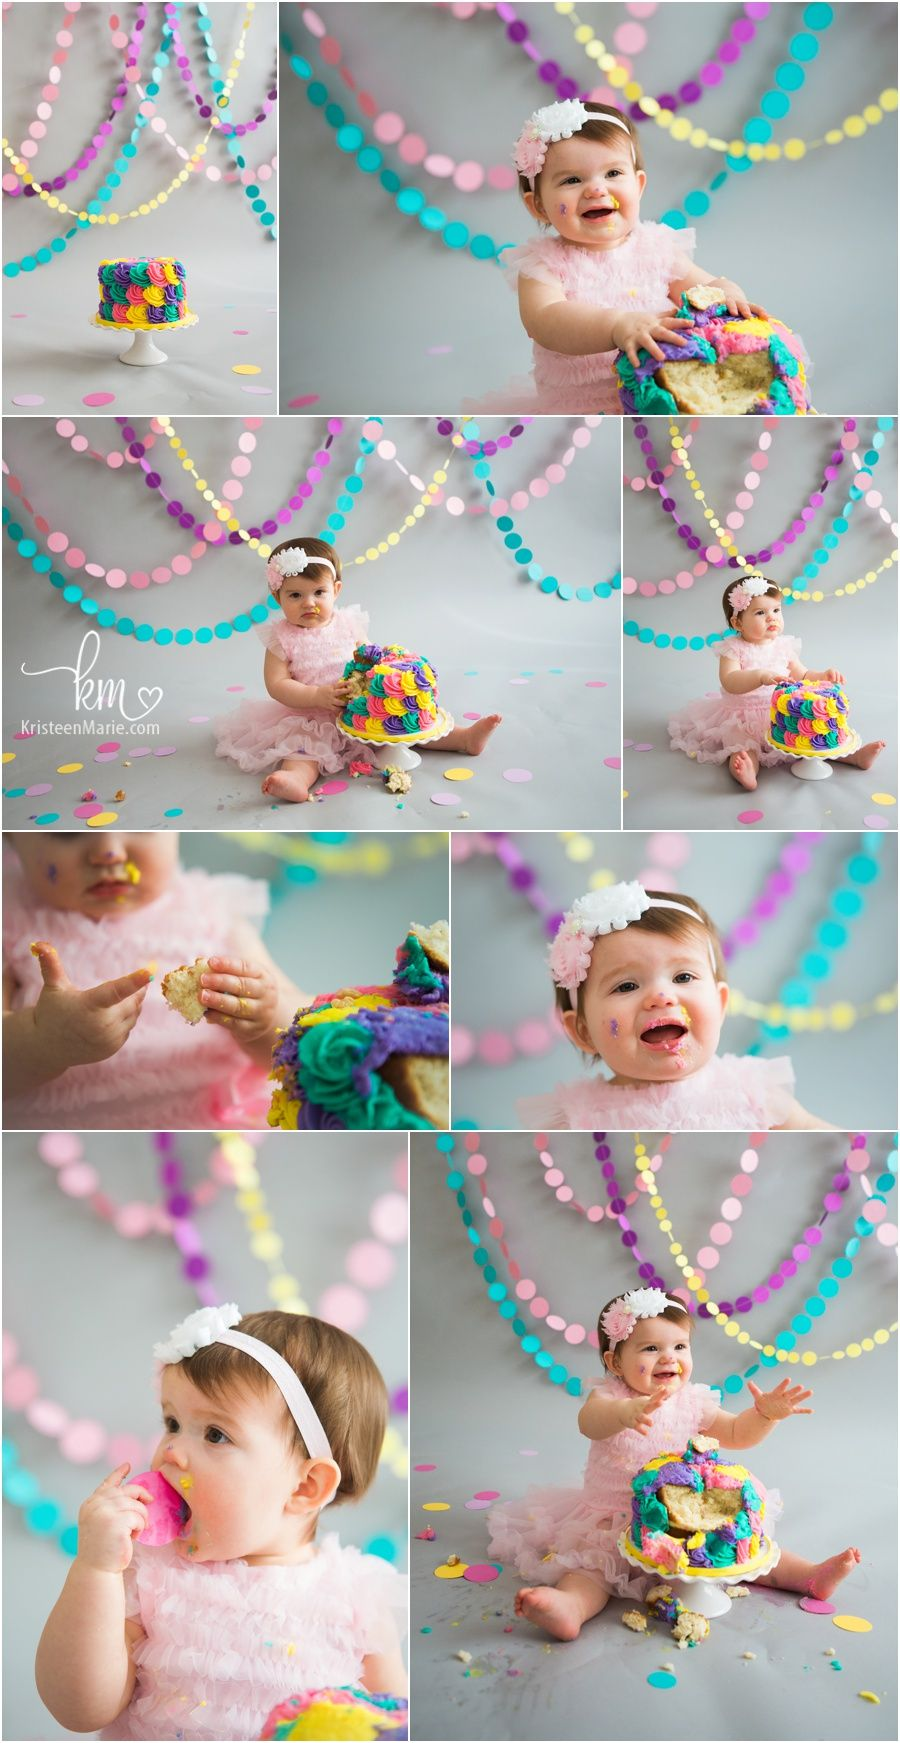 A Colorful Cake Smash â Indy Child Photographer in 2020